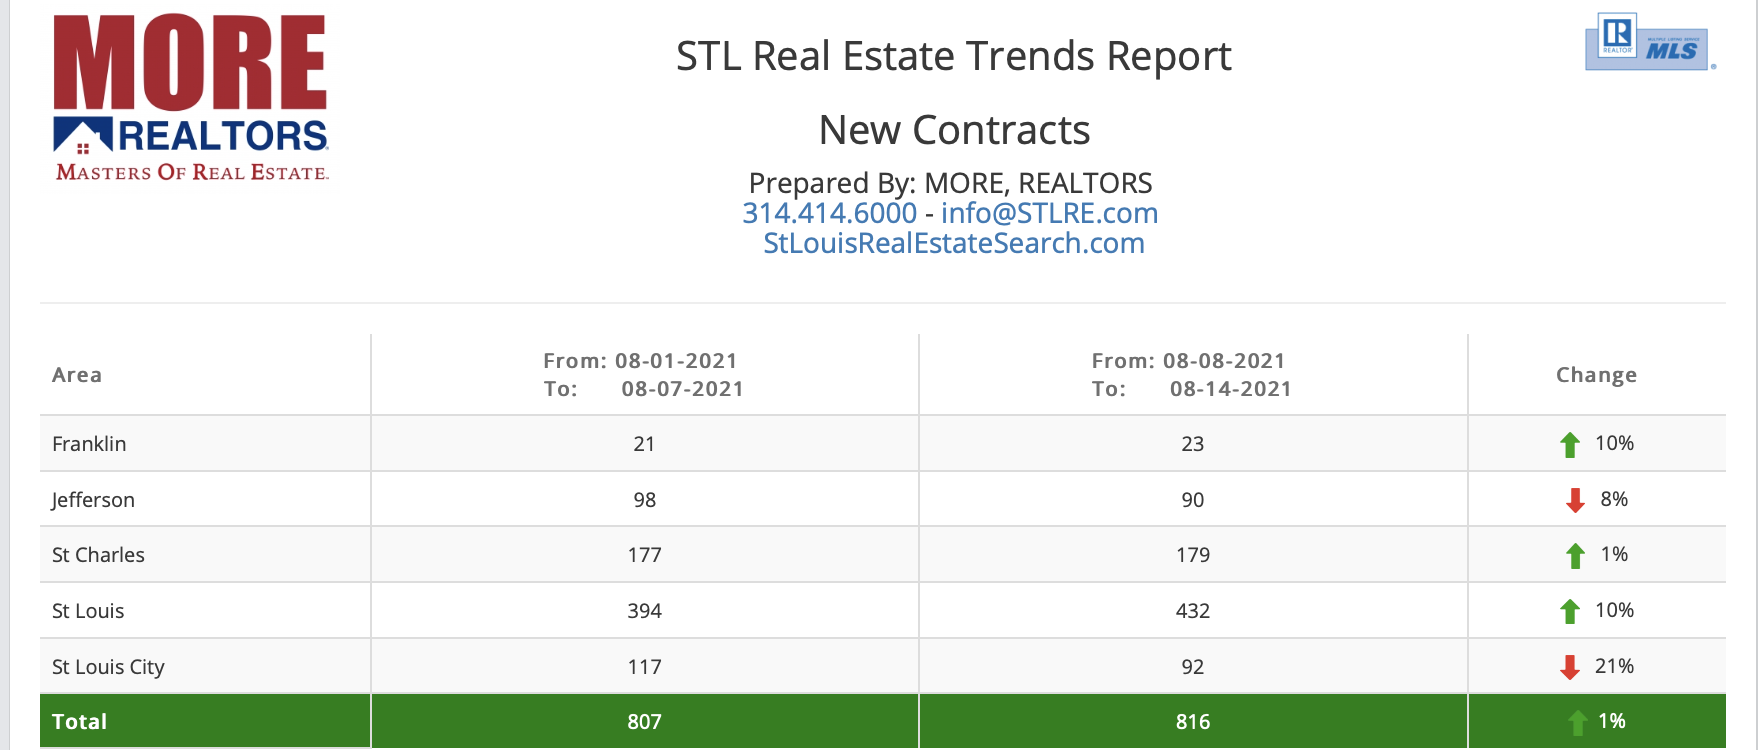 STL Real Estate Trends Report - New Sales Contracts